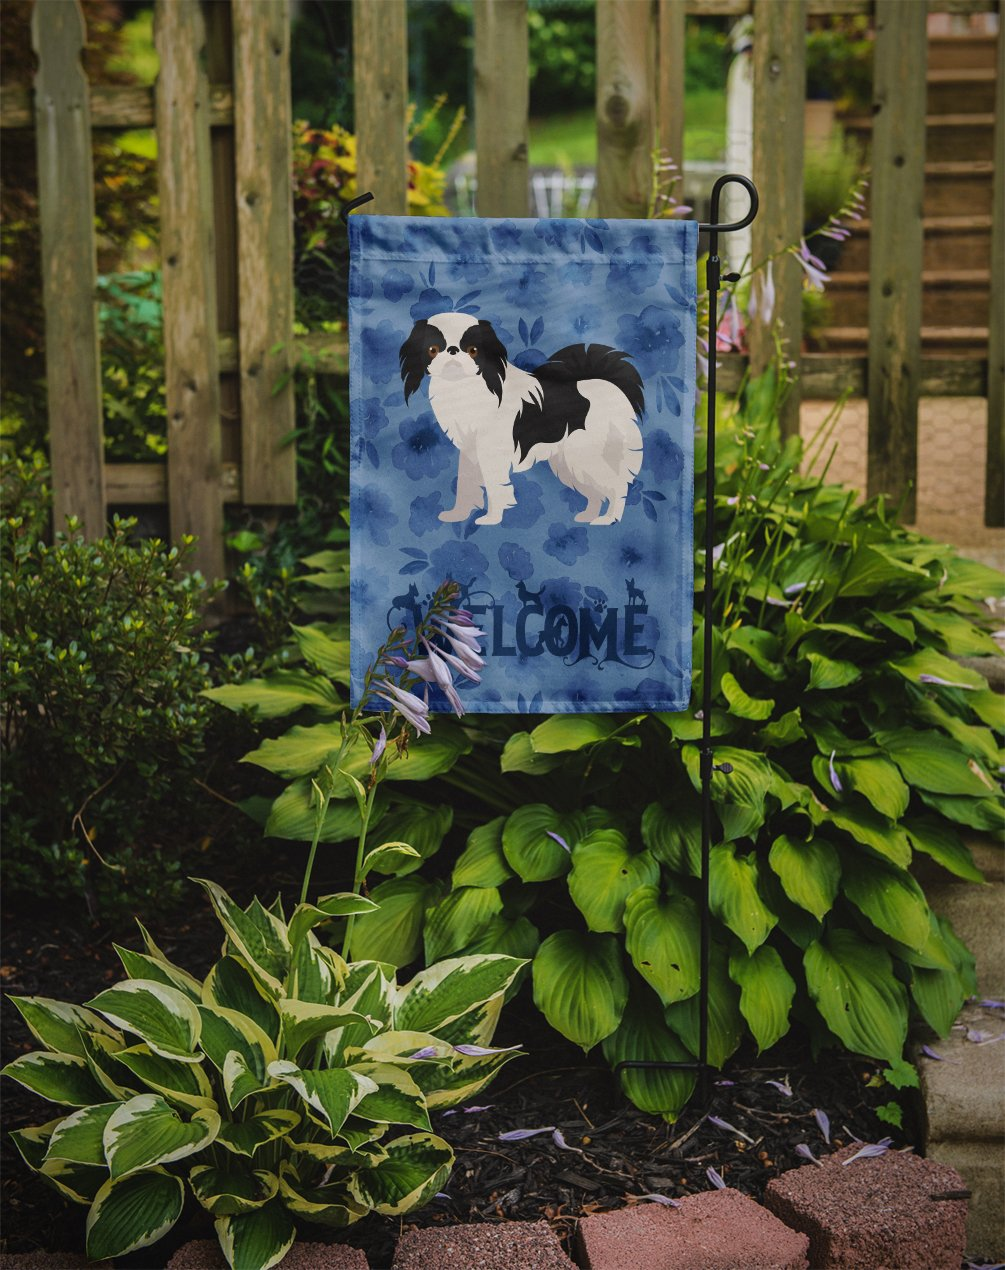 Japanese Chin #2 Welcome Flag Garden Size CK6005GF by Caroline's Treasures